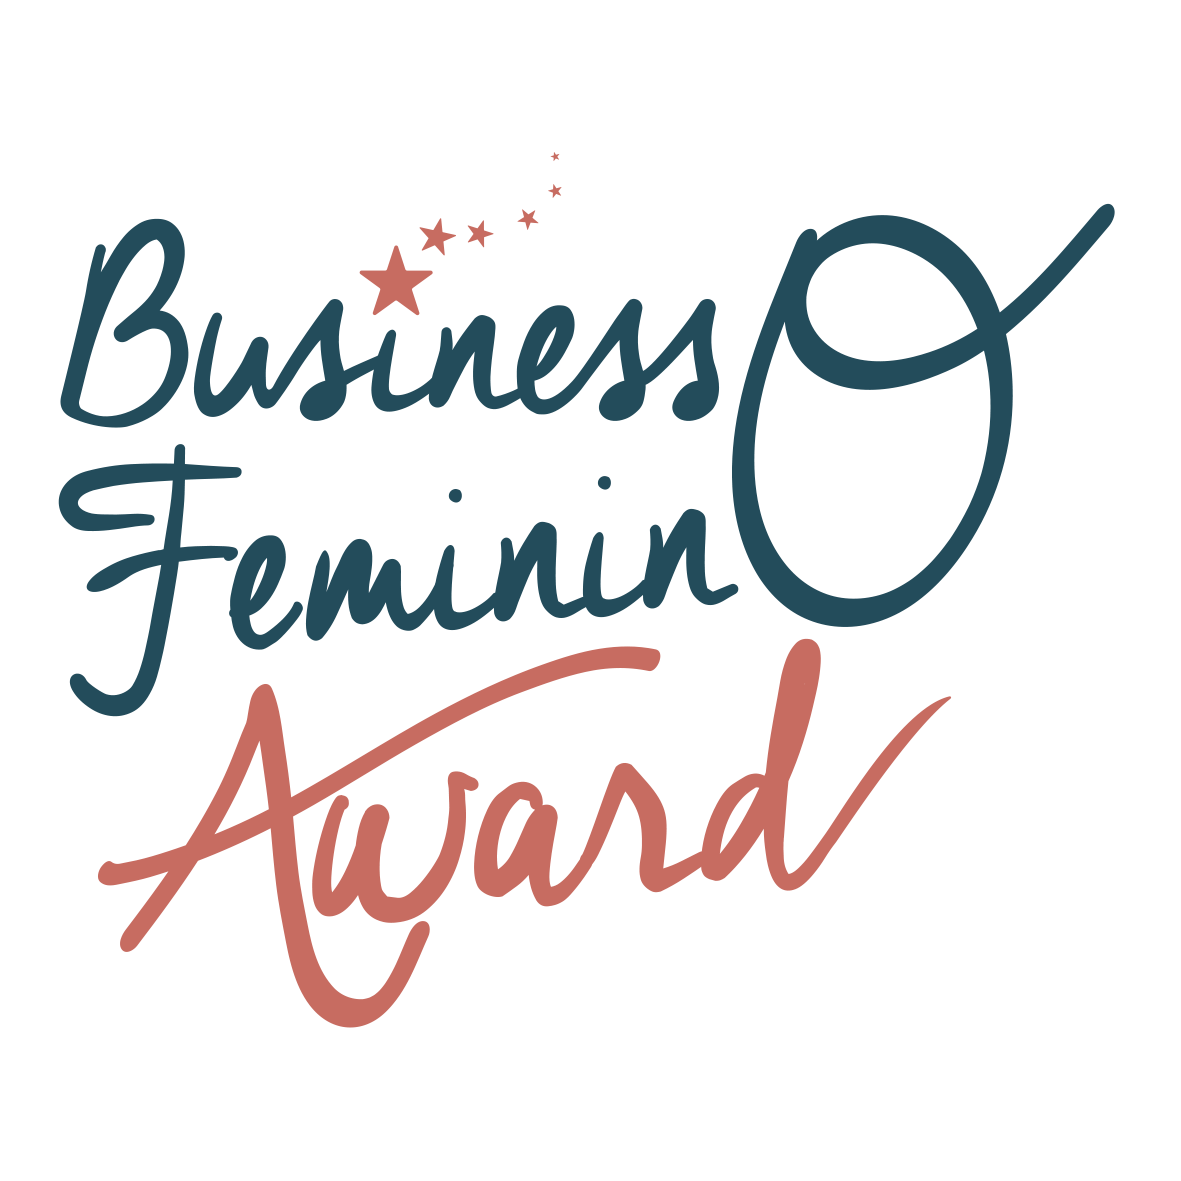 Business O Féminin Award